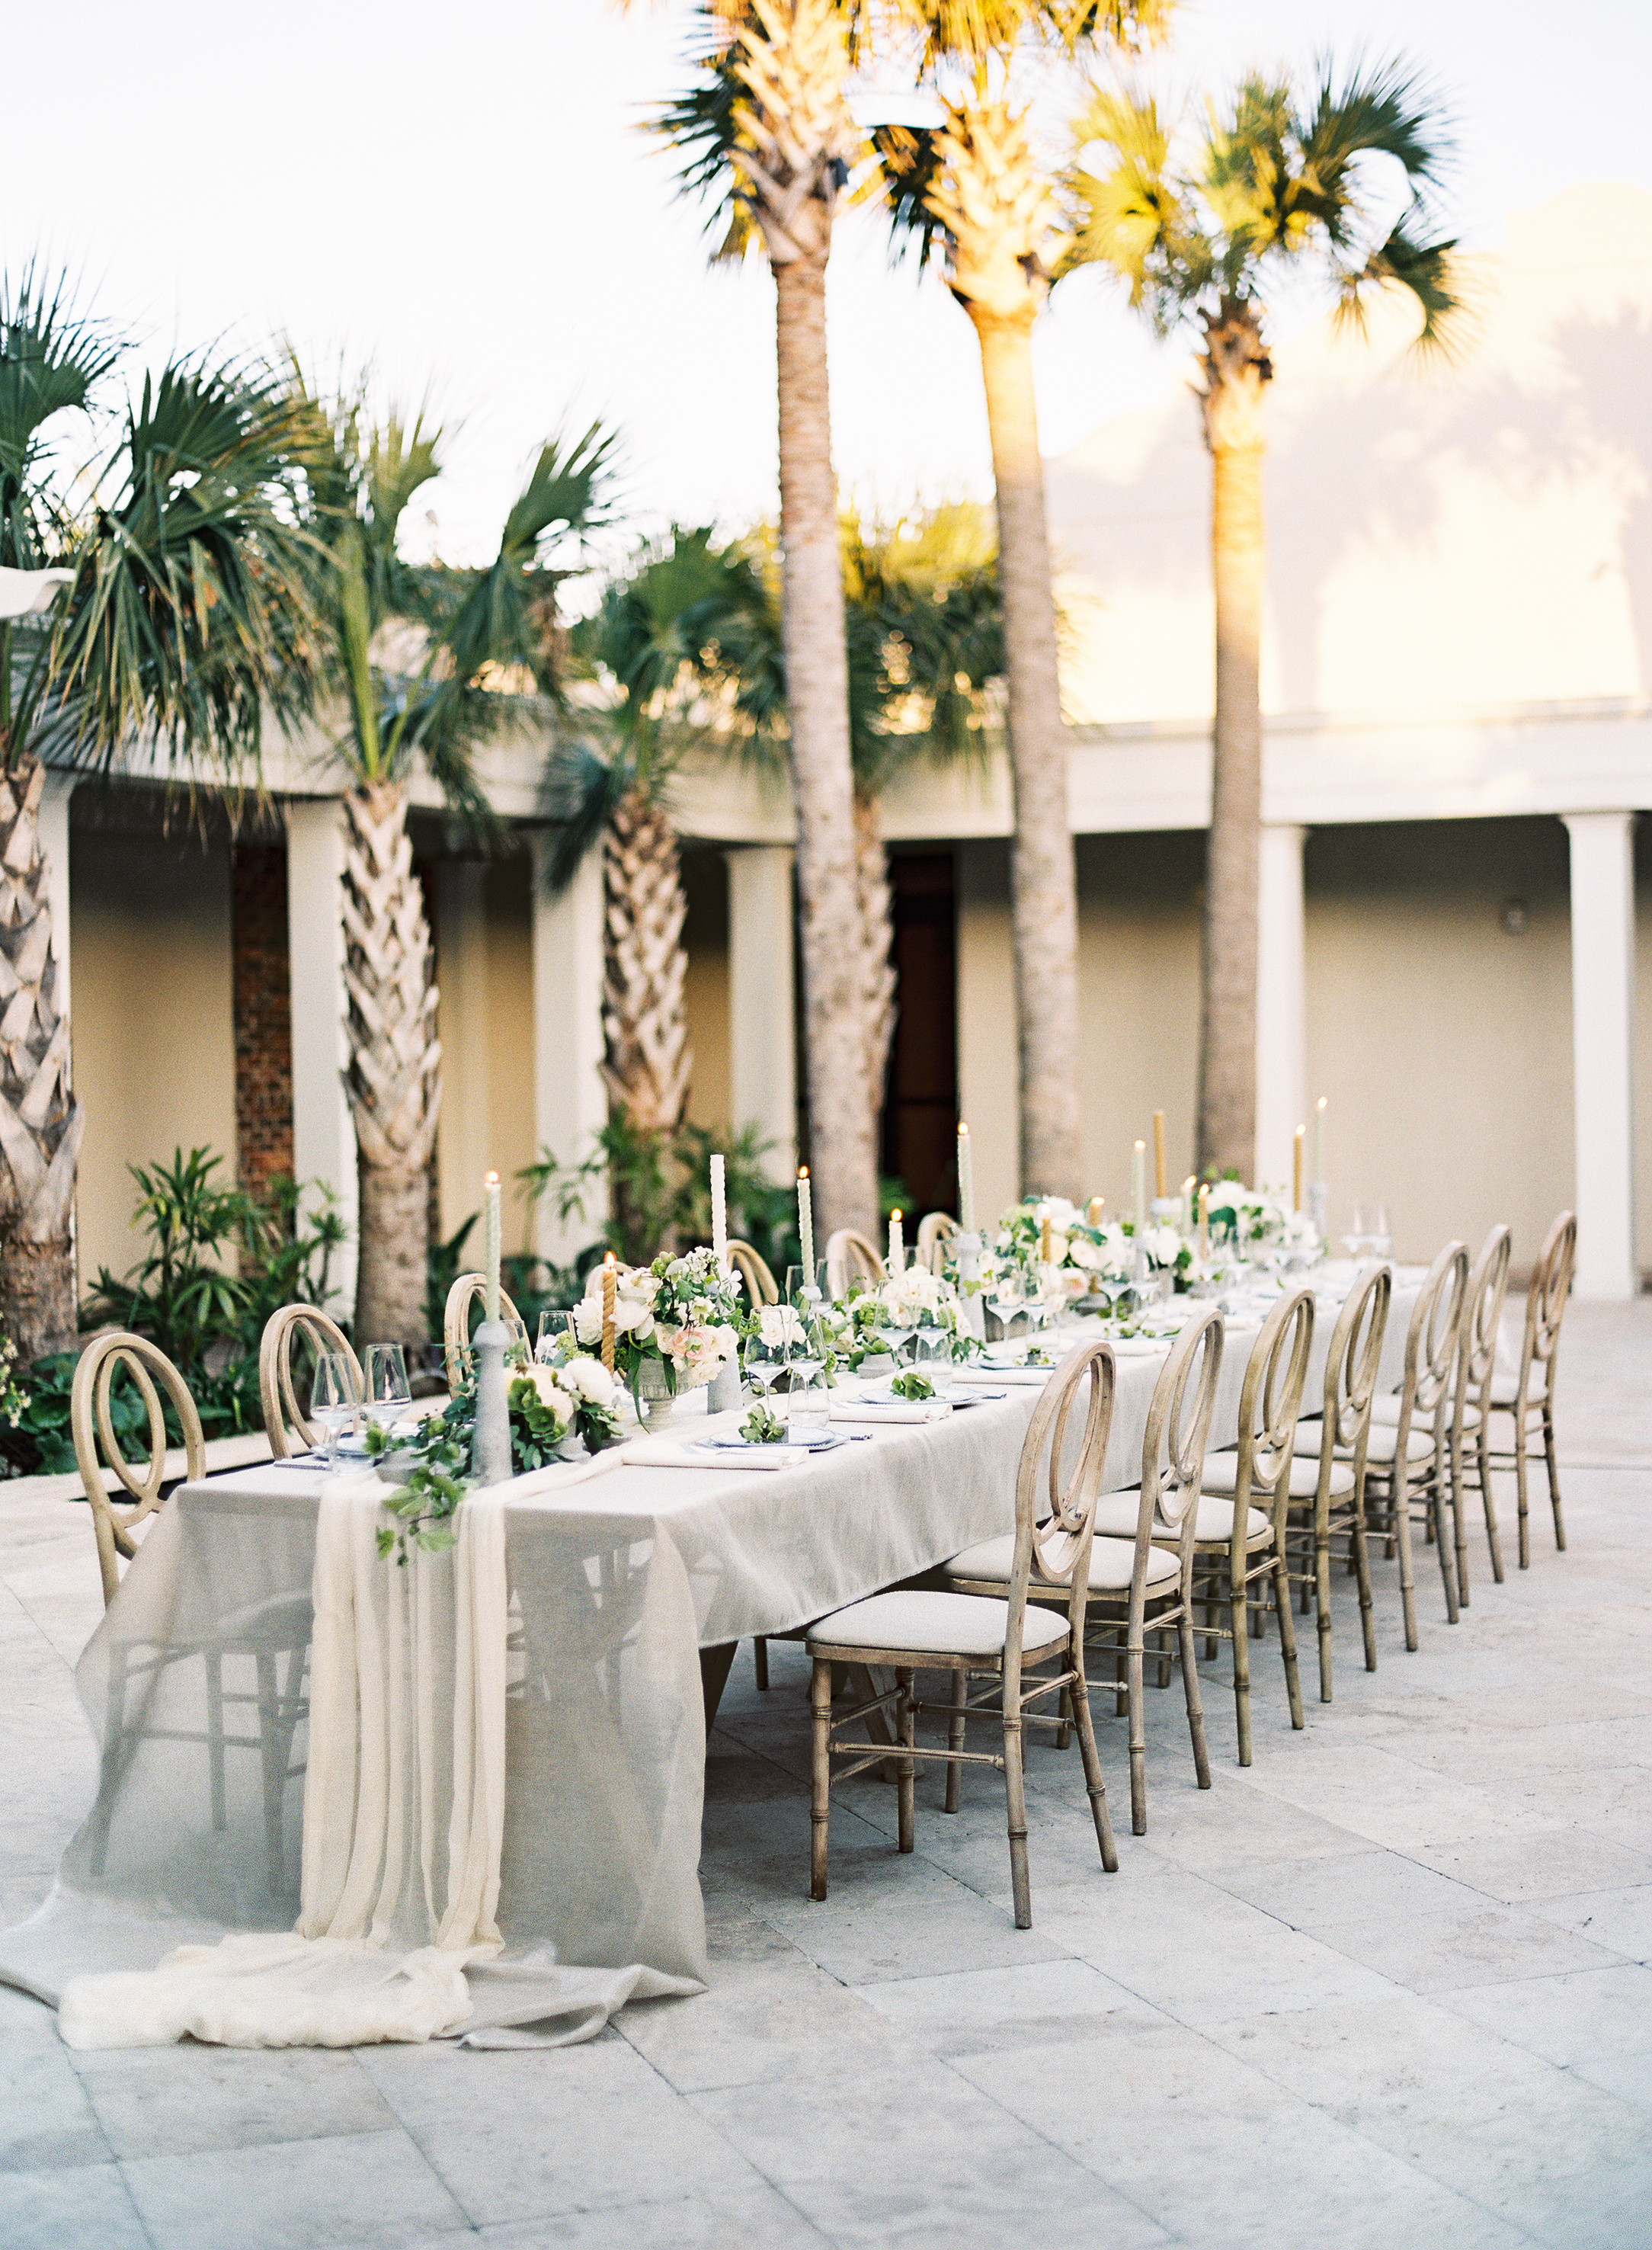 Photography by Eric Kelley || Planning by Easton Events